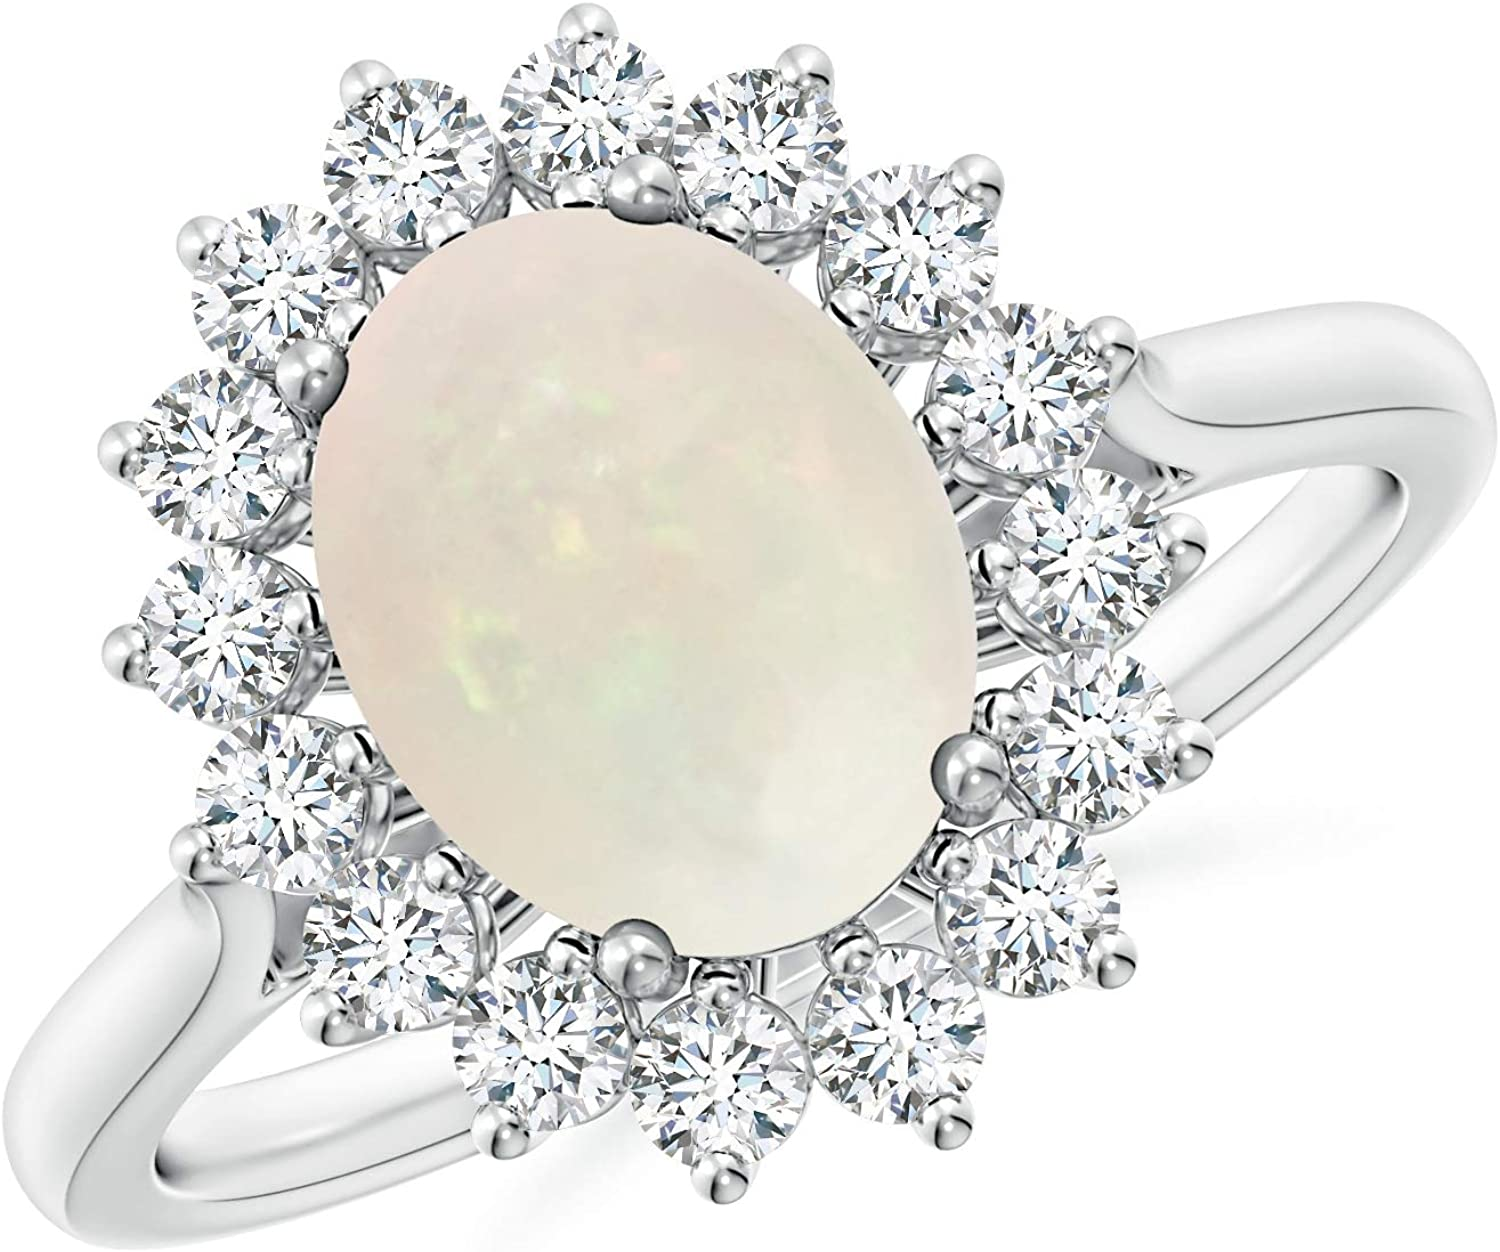 40% OFF Cheap Sale Charlotte Mall Oval Opal Ring with Floral Halo Diamond 9x7mm